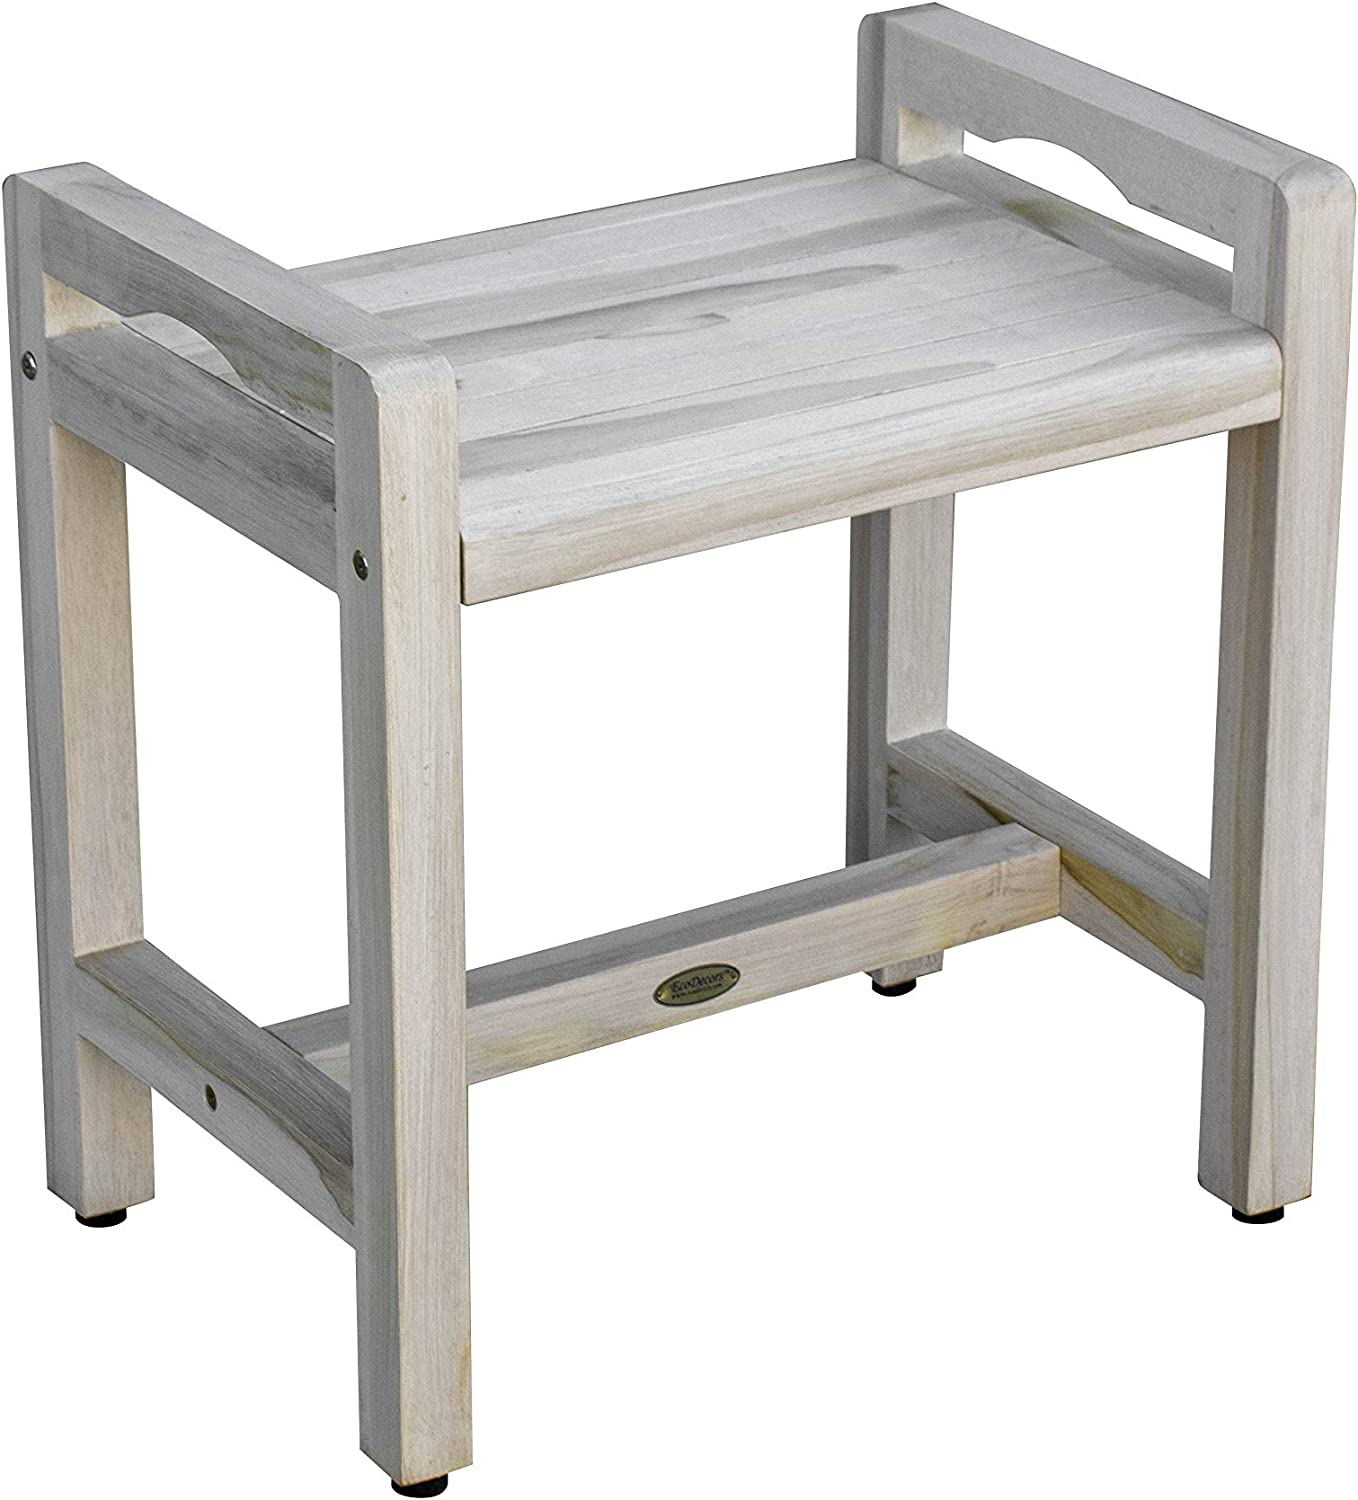 Coastal Vogue Eleganto Teak Shower Stool with LiftAid Arms, 20 inches, Driftwood